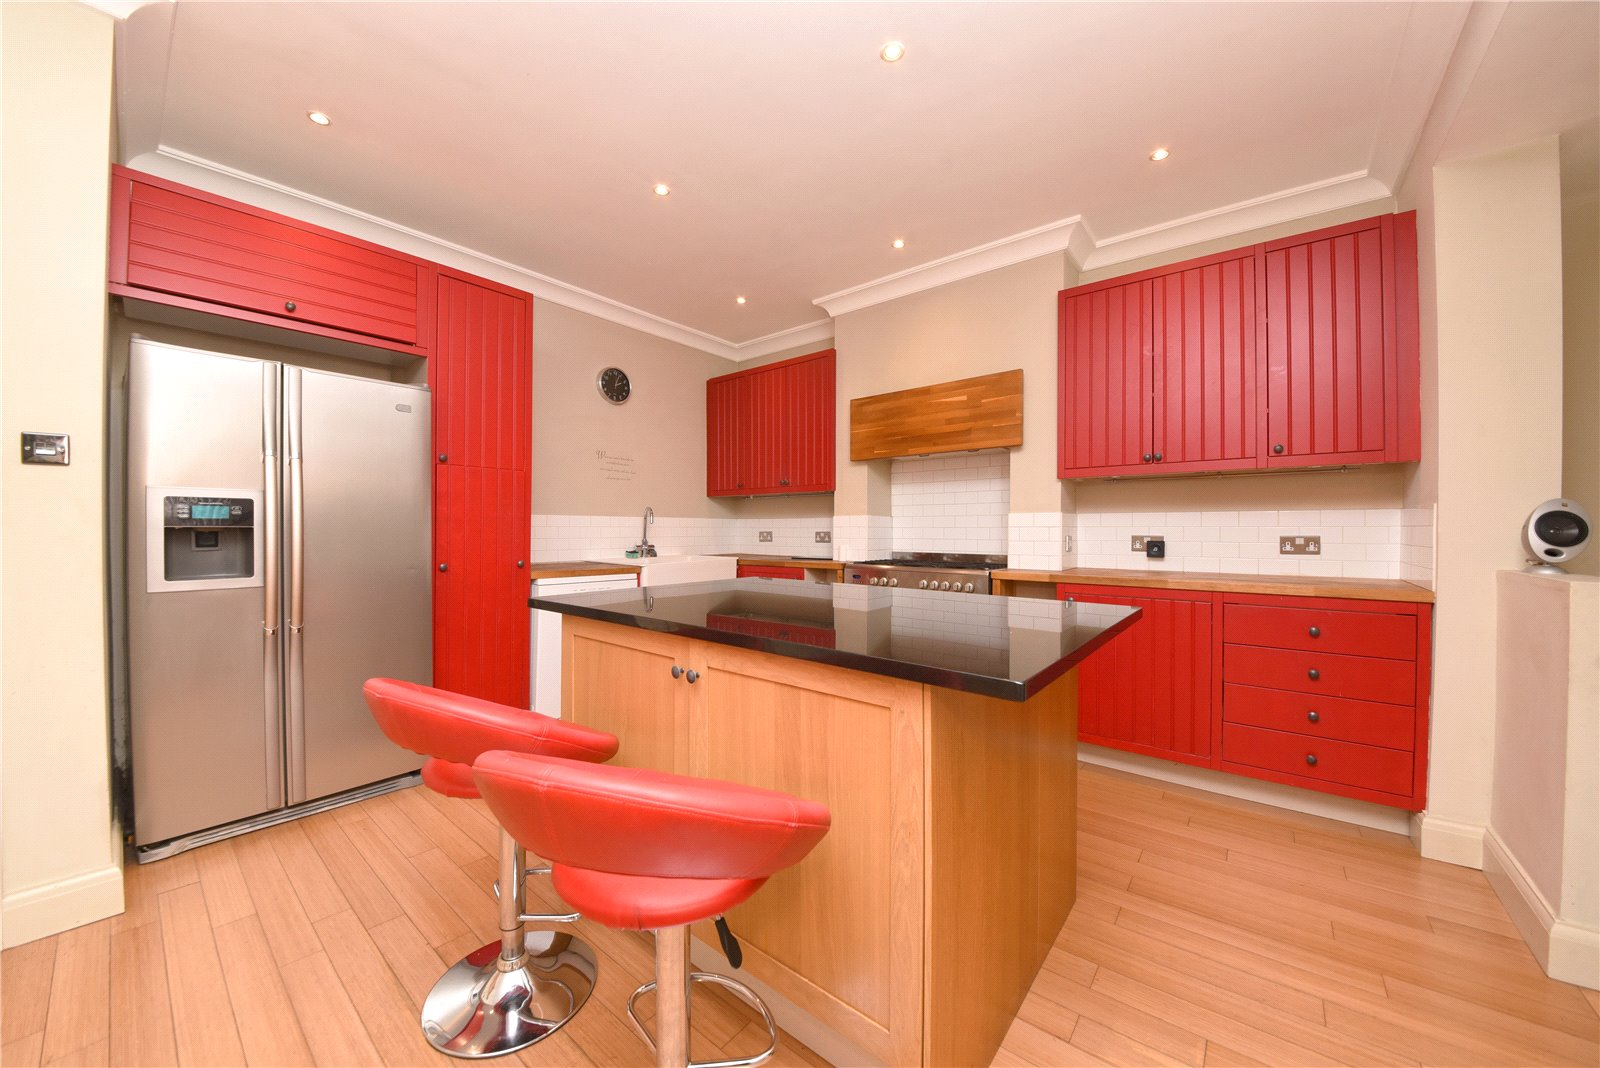 4 bed house to rent in Longland Drive, Totteridge  - Property Image 1